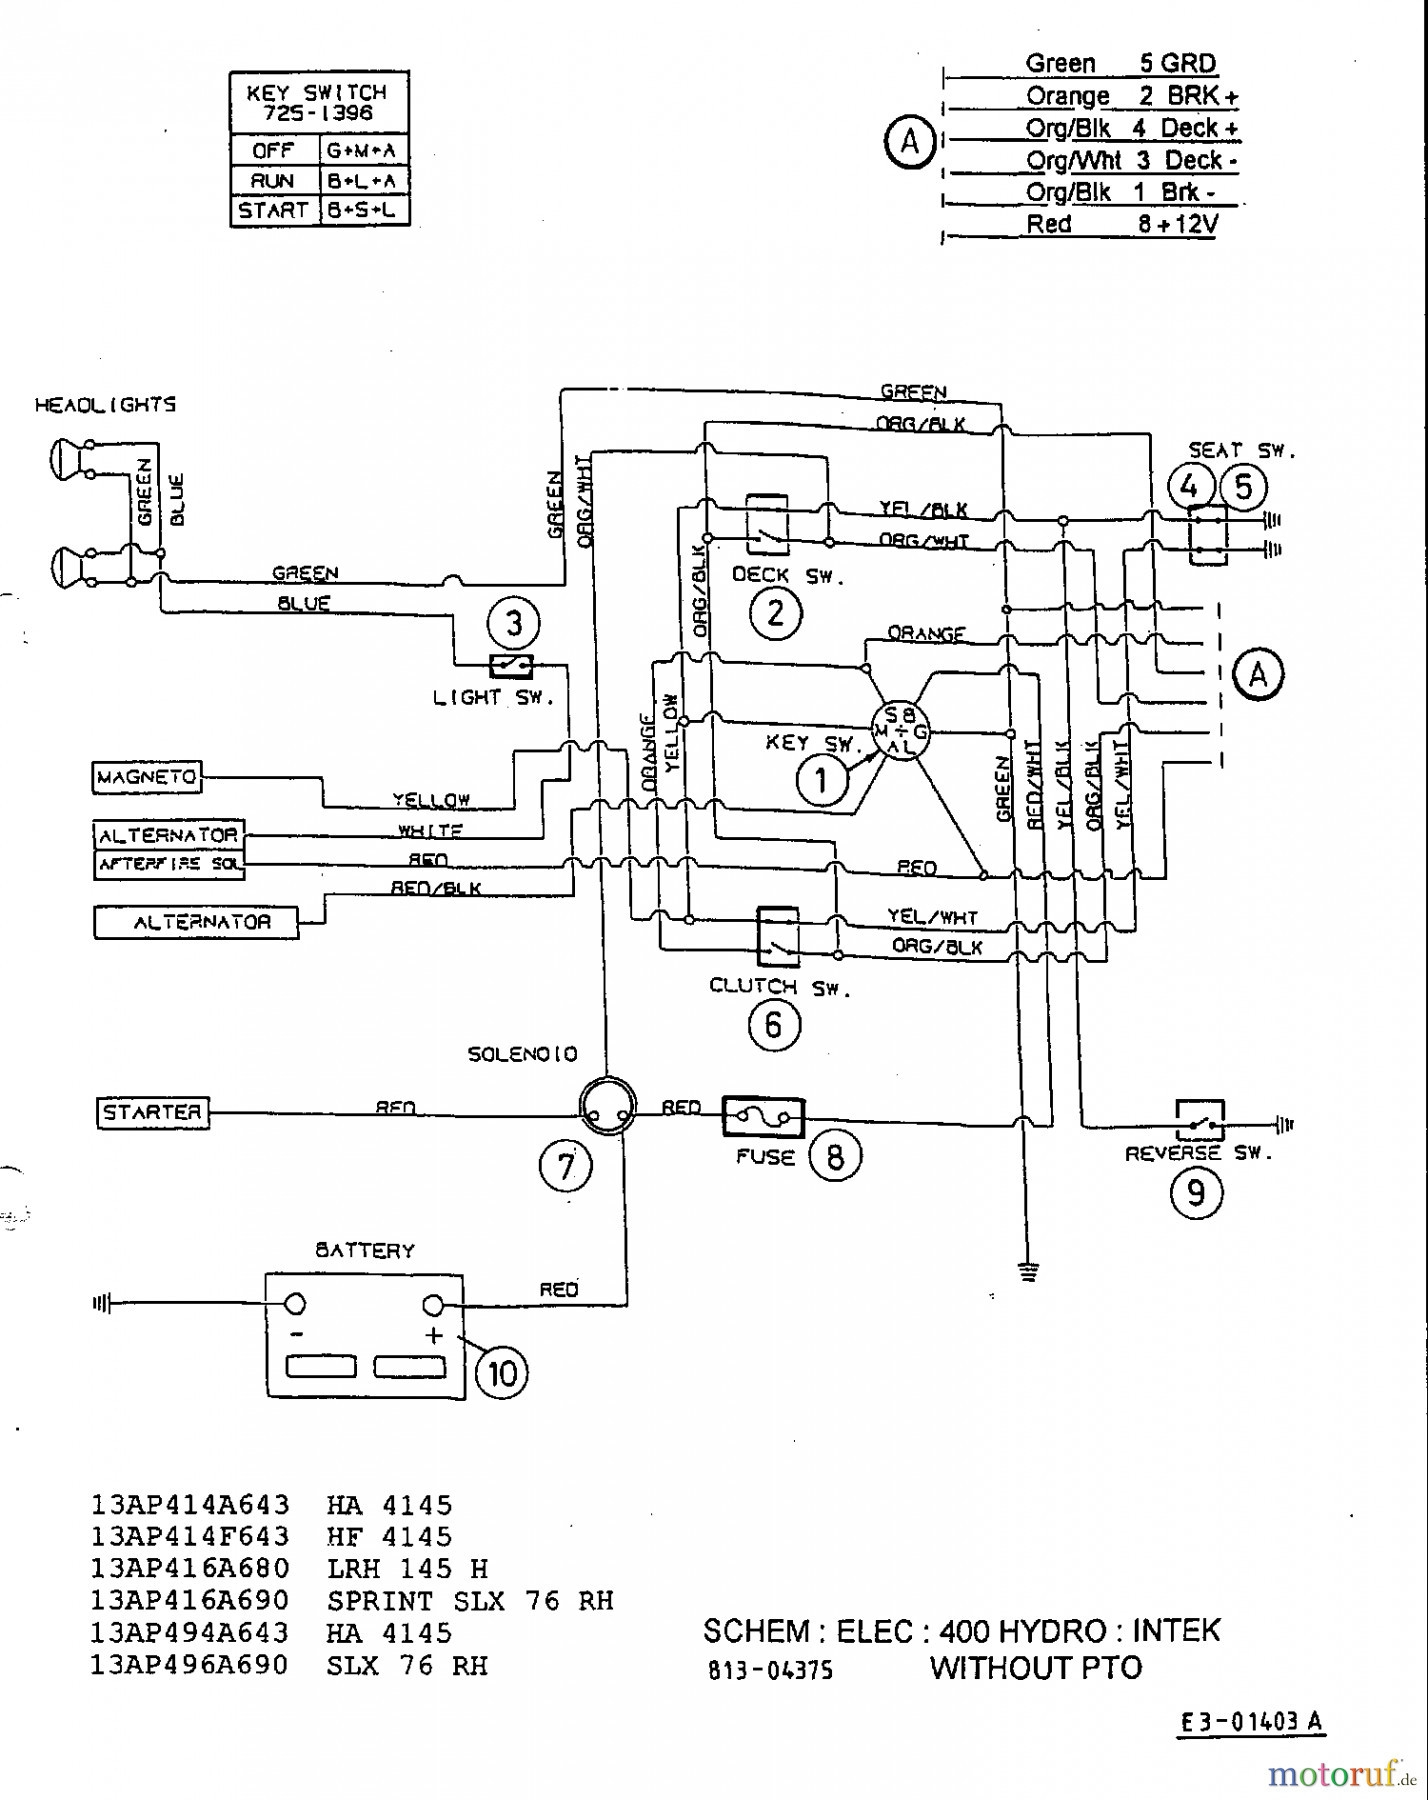 wiring diagram for mtd riding lawn mower